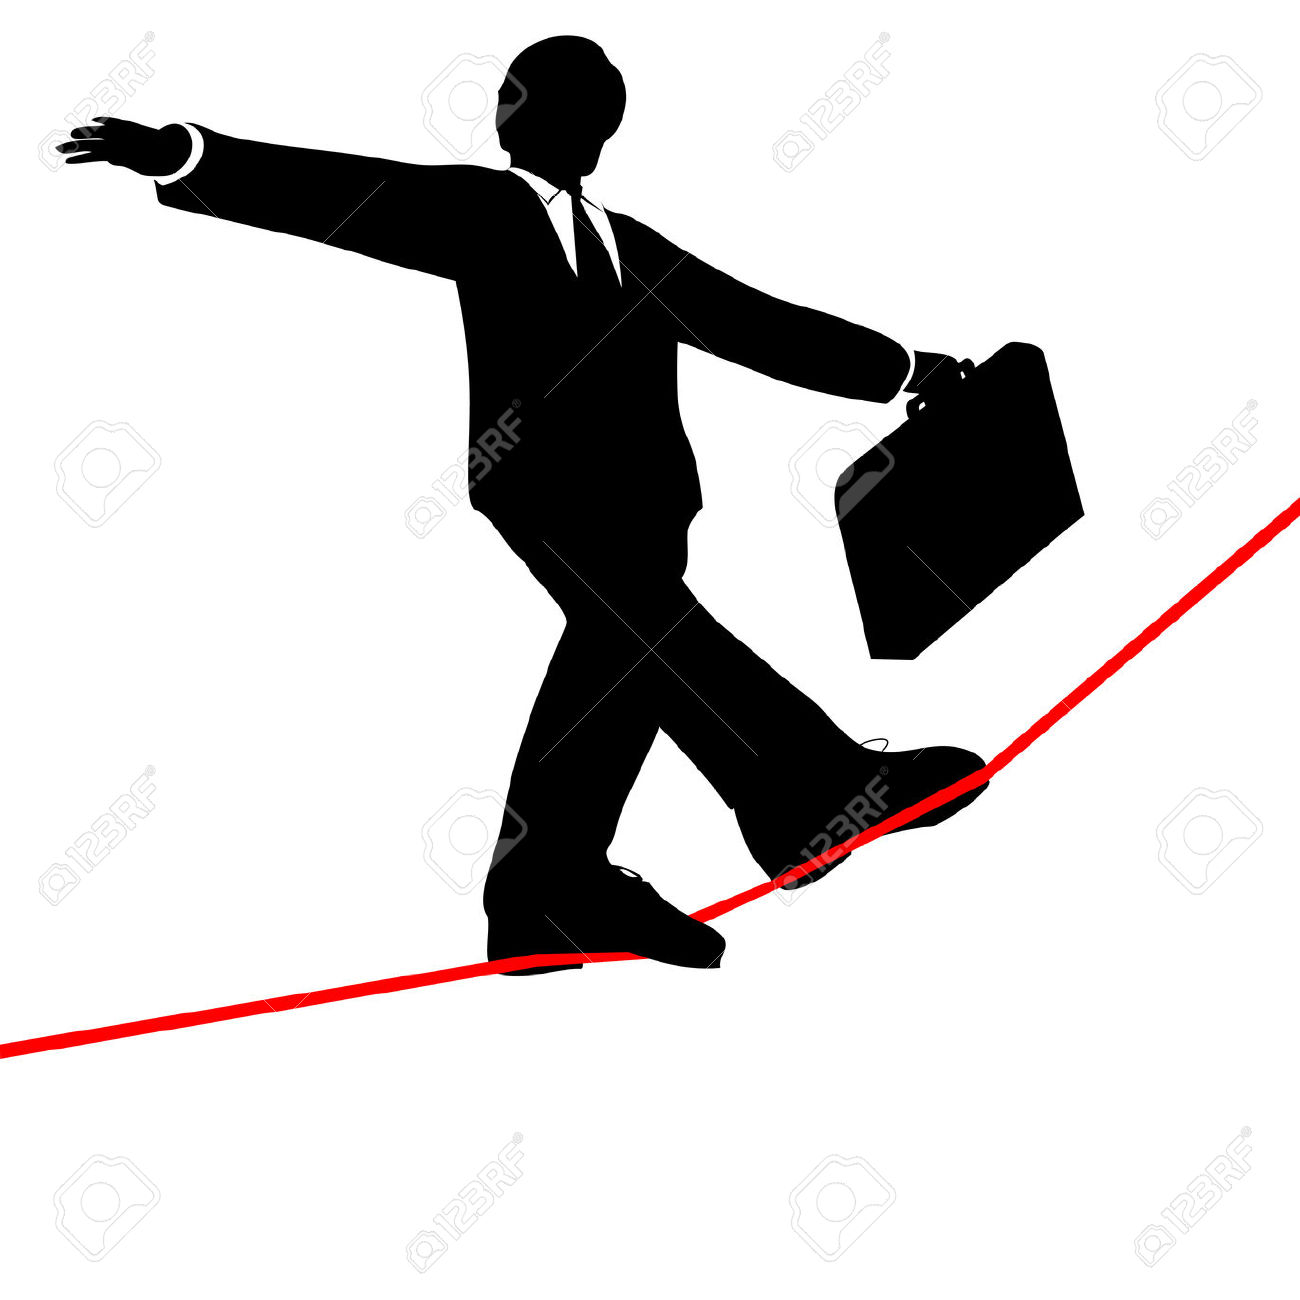 A Business Man Balances With A Briefcase, Walks A High Wire.